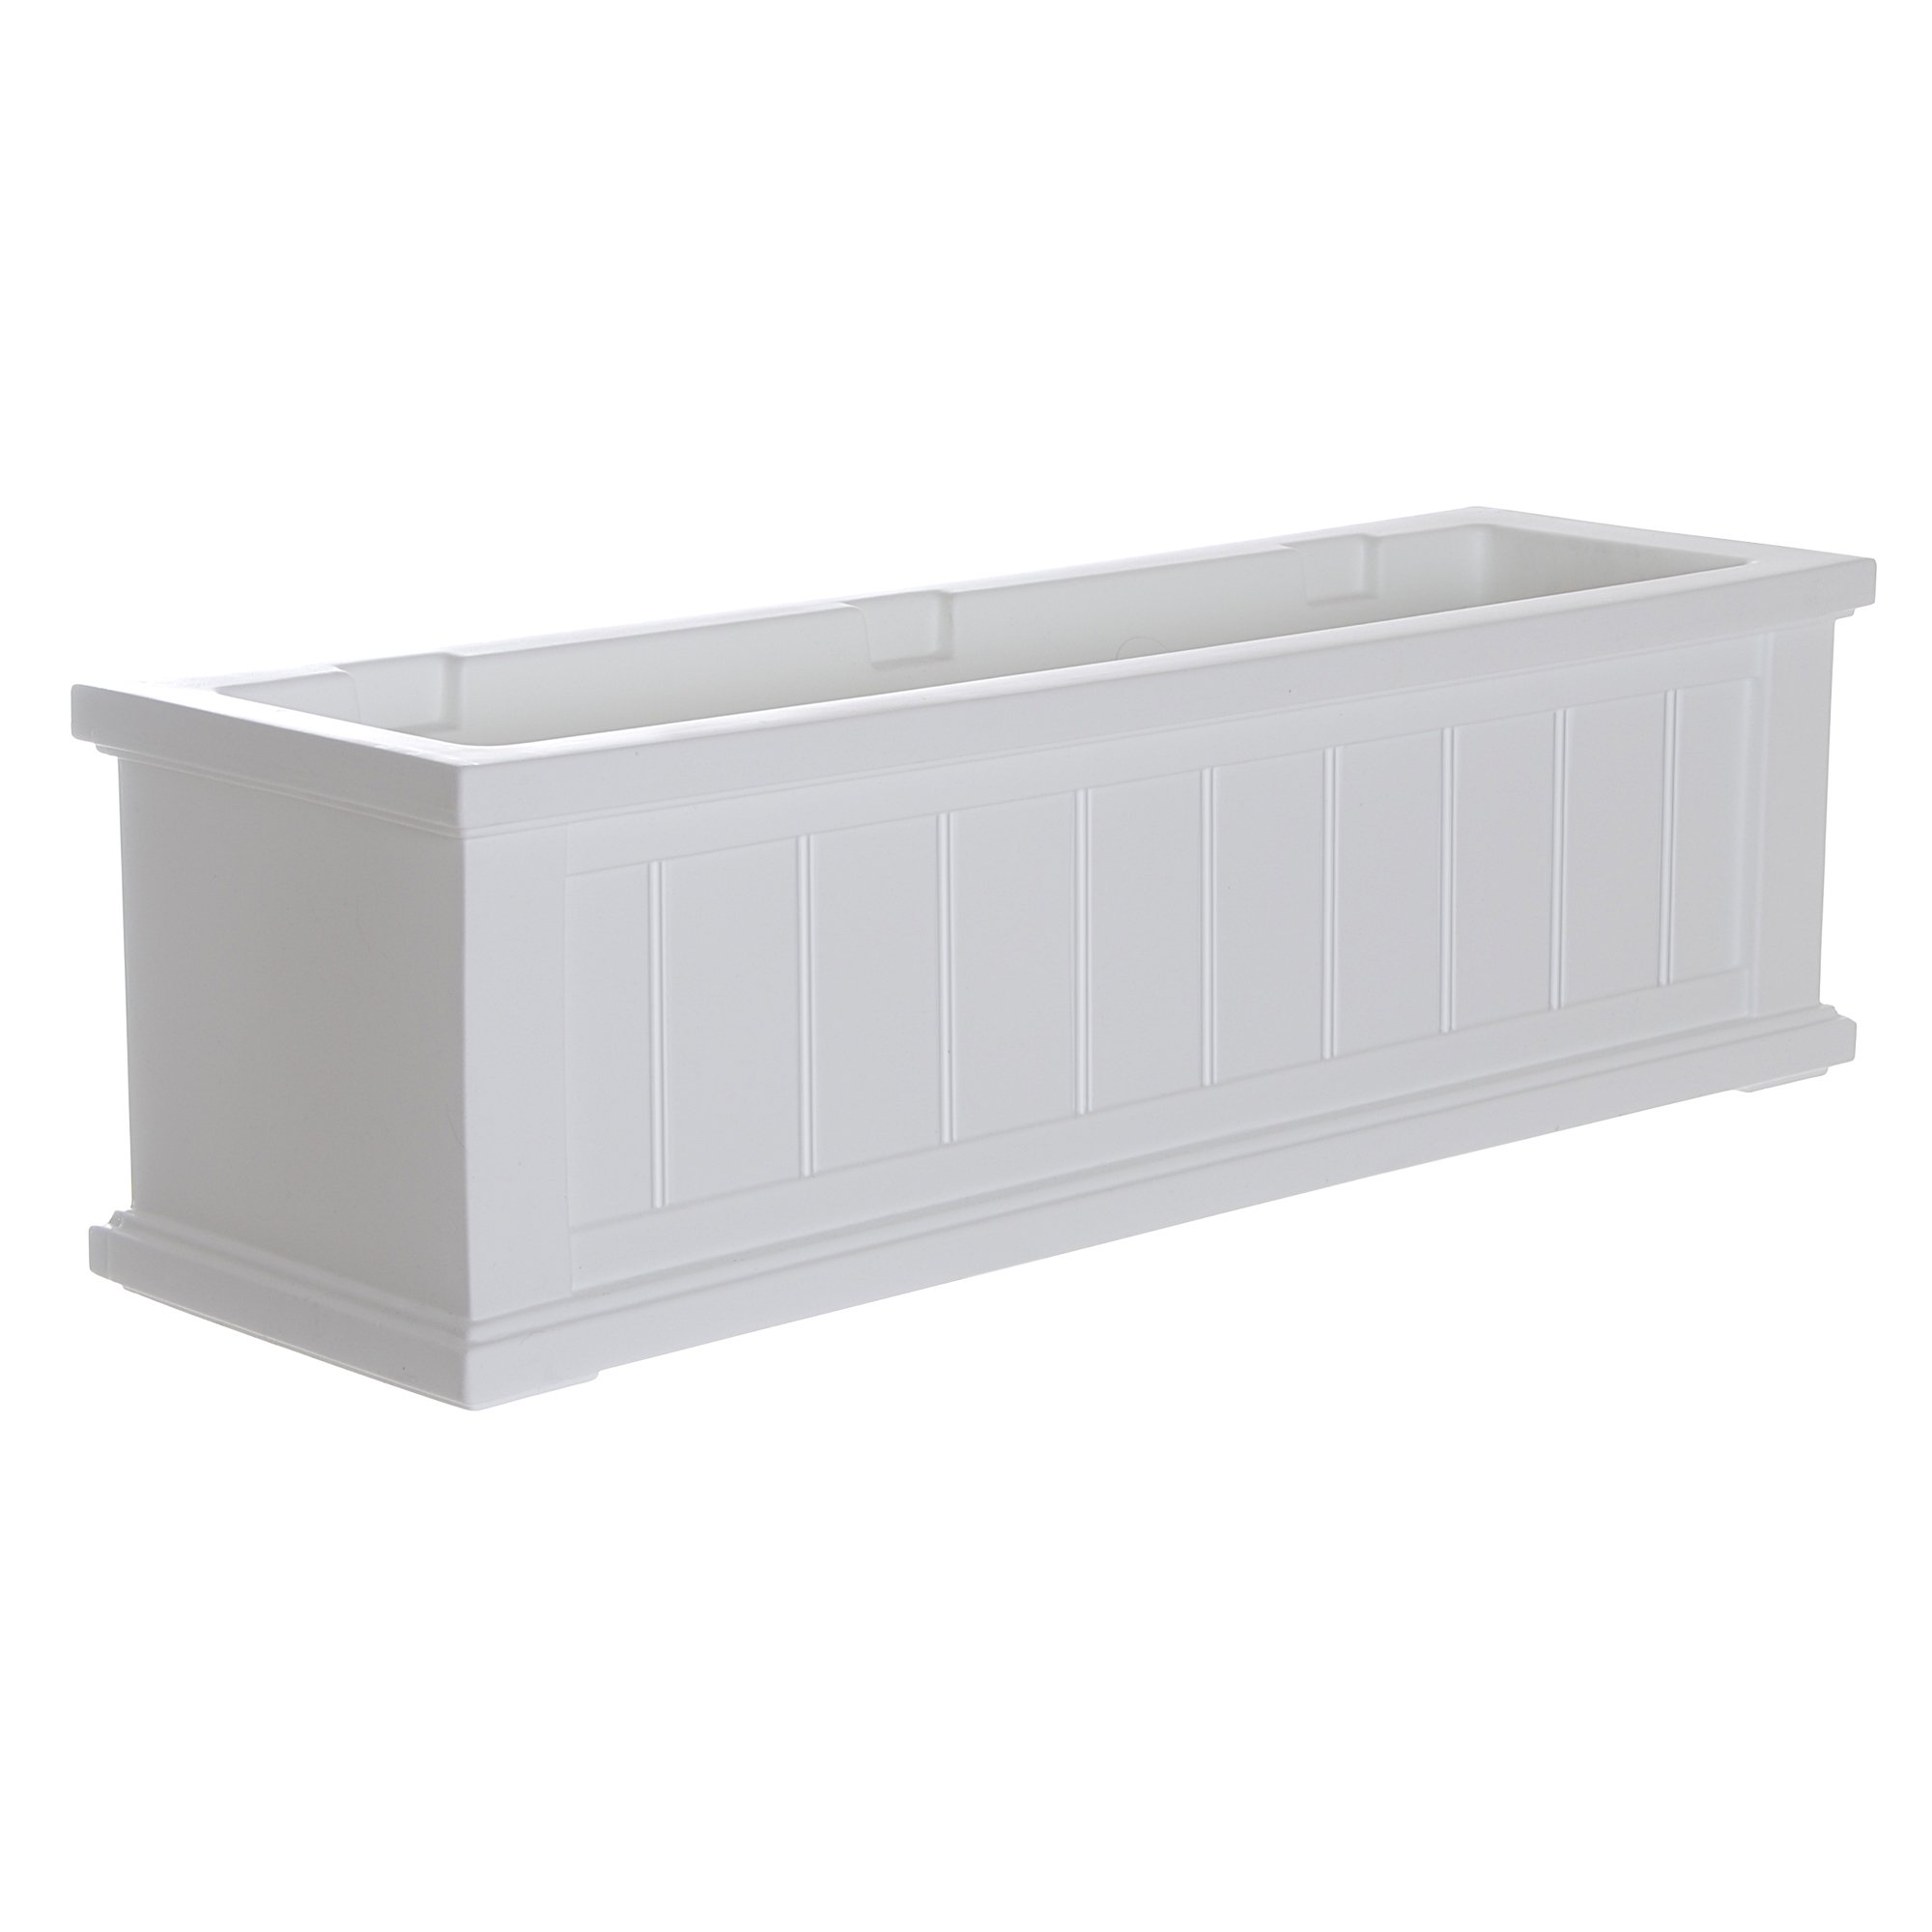 Mayne 4840-W Cape Cod Polyethylene Window Box, 3', White by Mayne